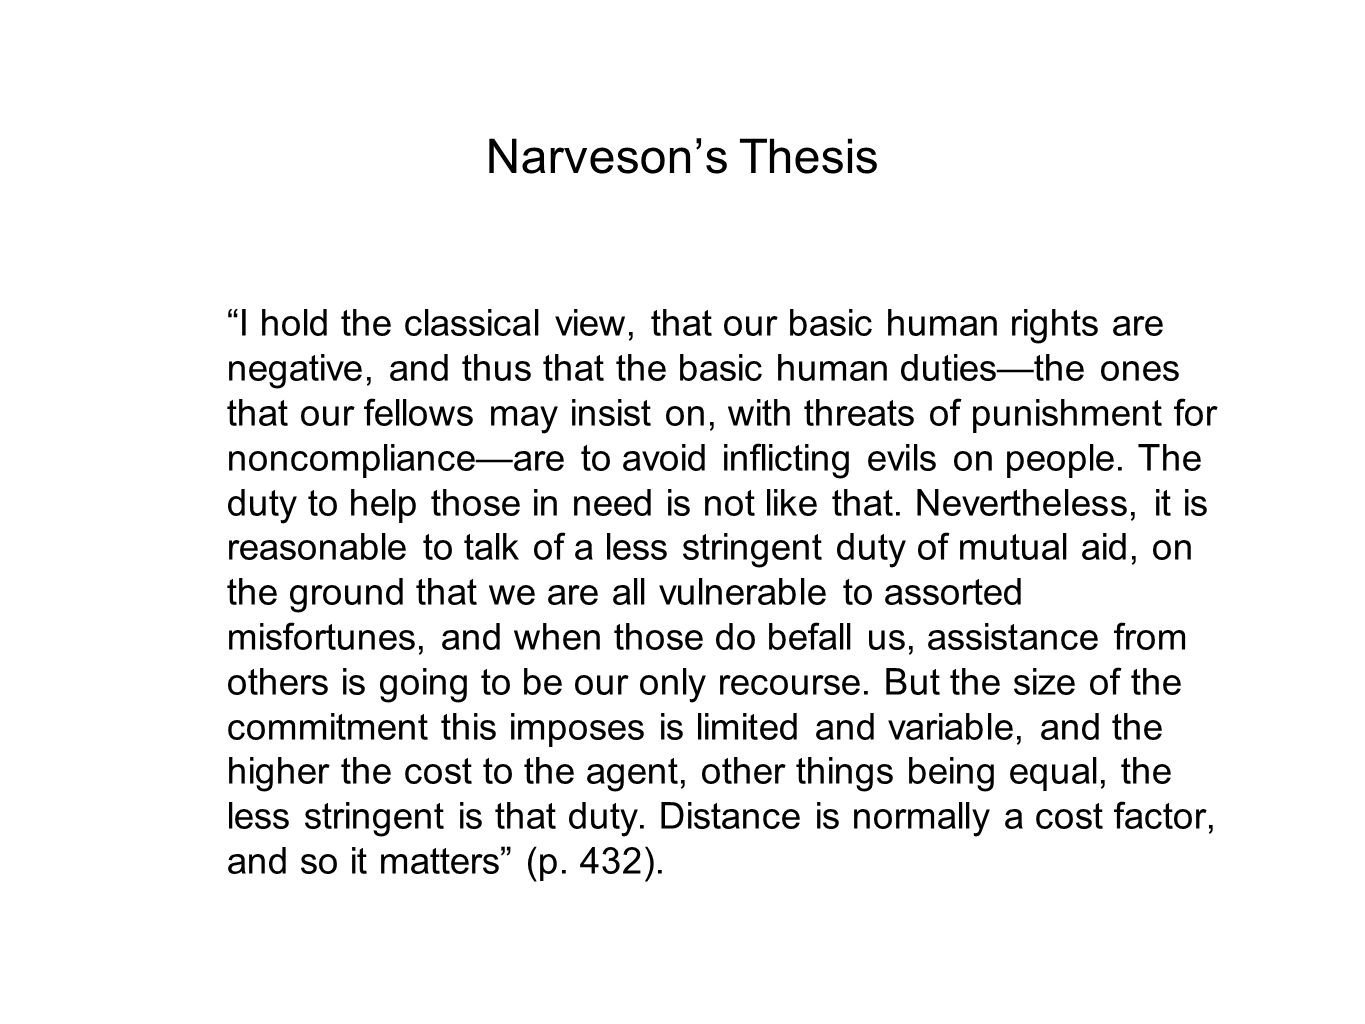 Narveson's Thesis I hold the classical view, that our basic human rights are negative, and thus that the basic human duties—the ones that our fellows may insist on, with threats of punishment for noncompliance—are to avoid inflicting evils on people.